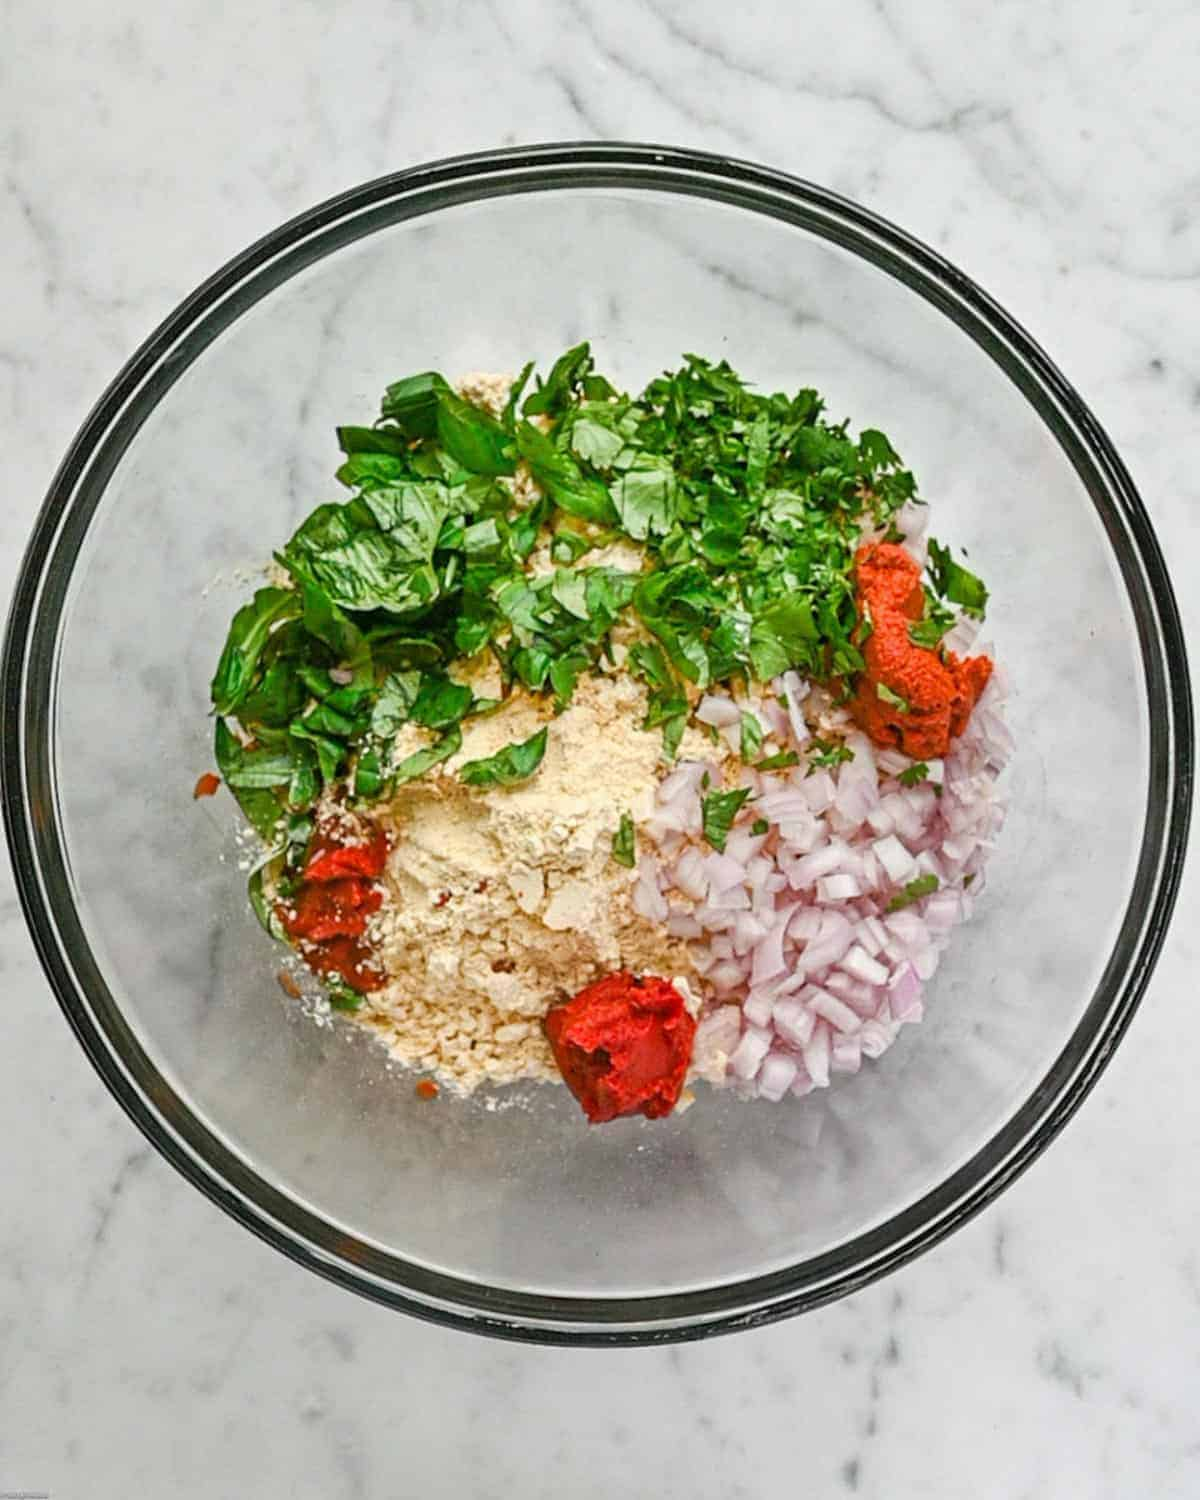 Thai red curry paste, sriracha, tomato paste, red onions, fresh basil, and cilantro in a bowl.